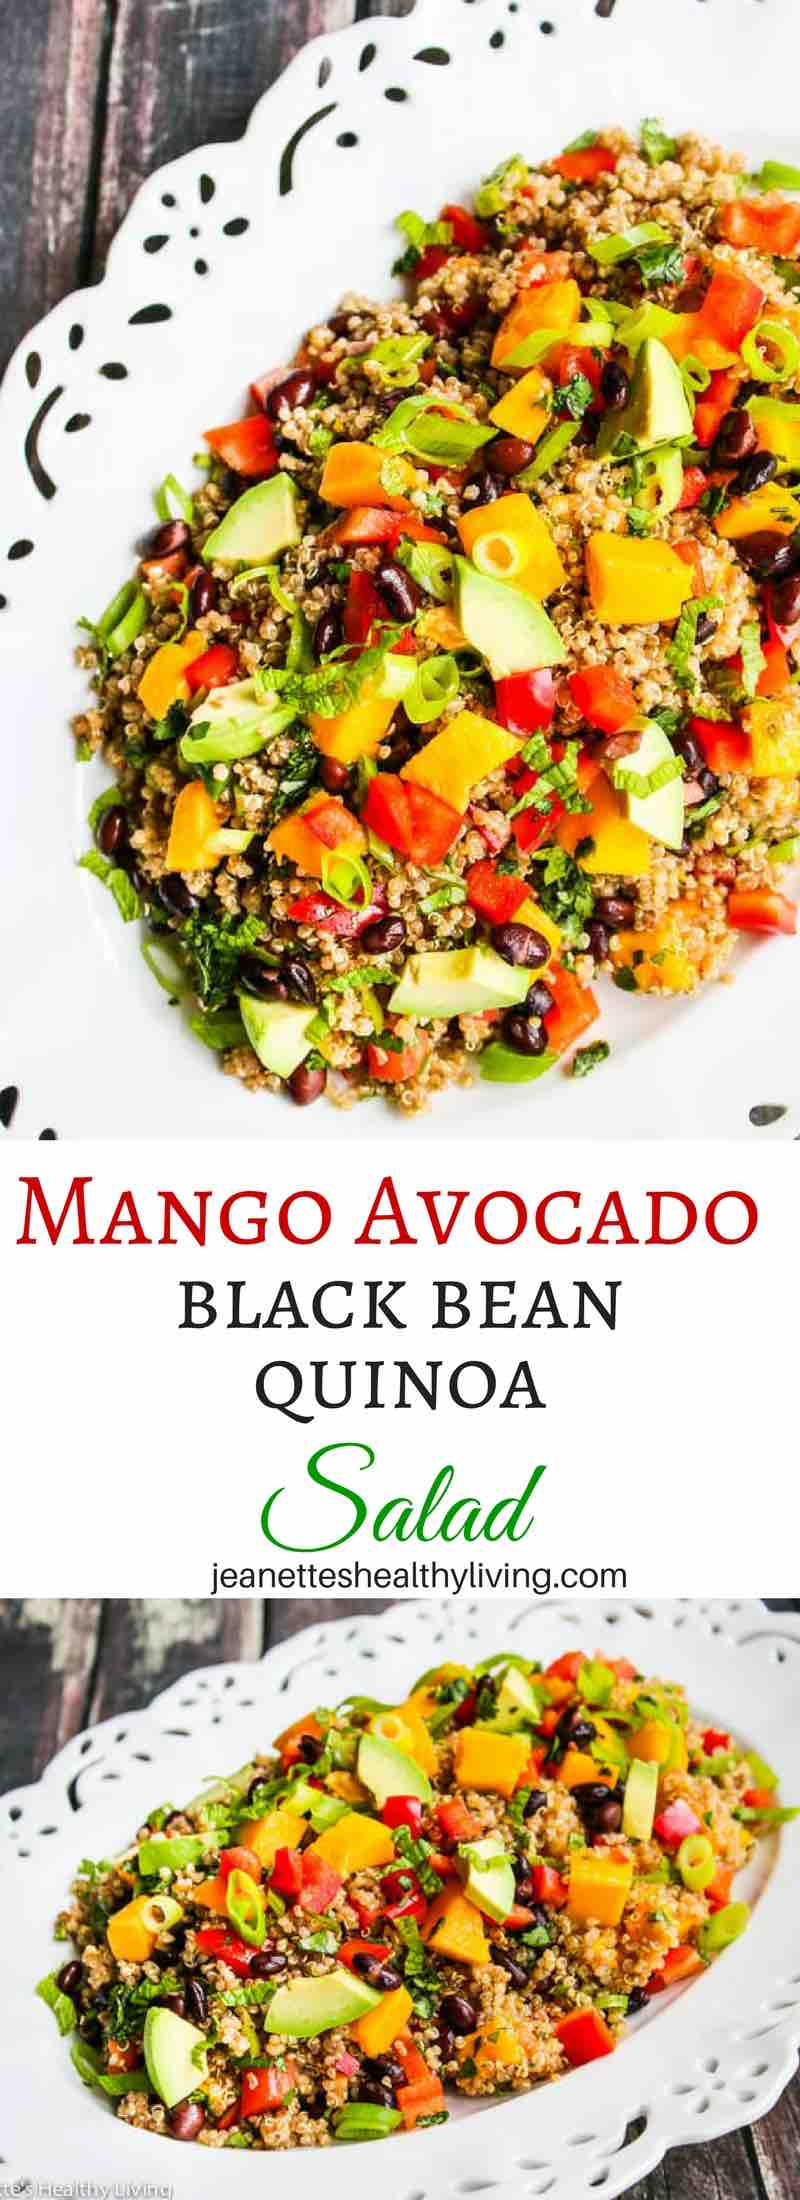 Mango Avocado Black Bean Quinoa Salad This Beautiful Healthy Salad Is Perfect For Entertaining